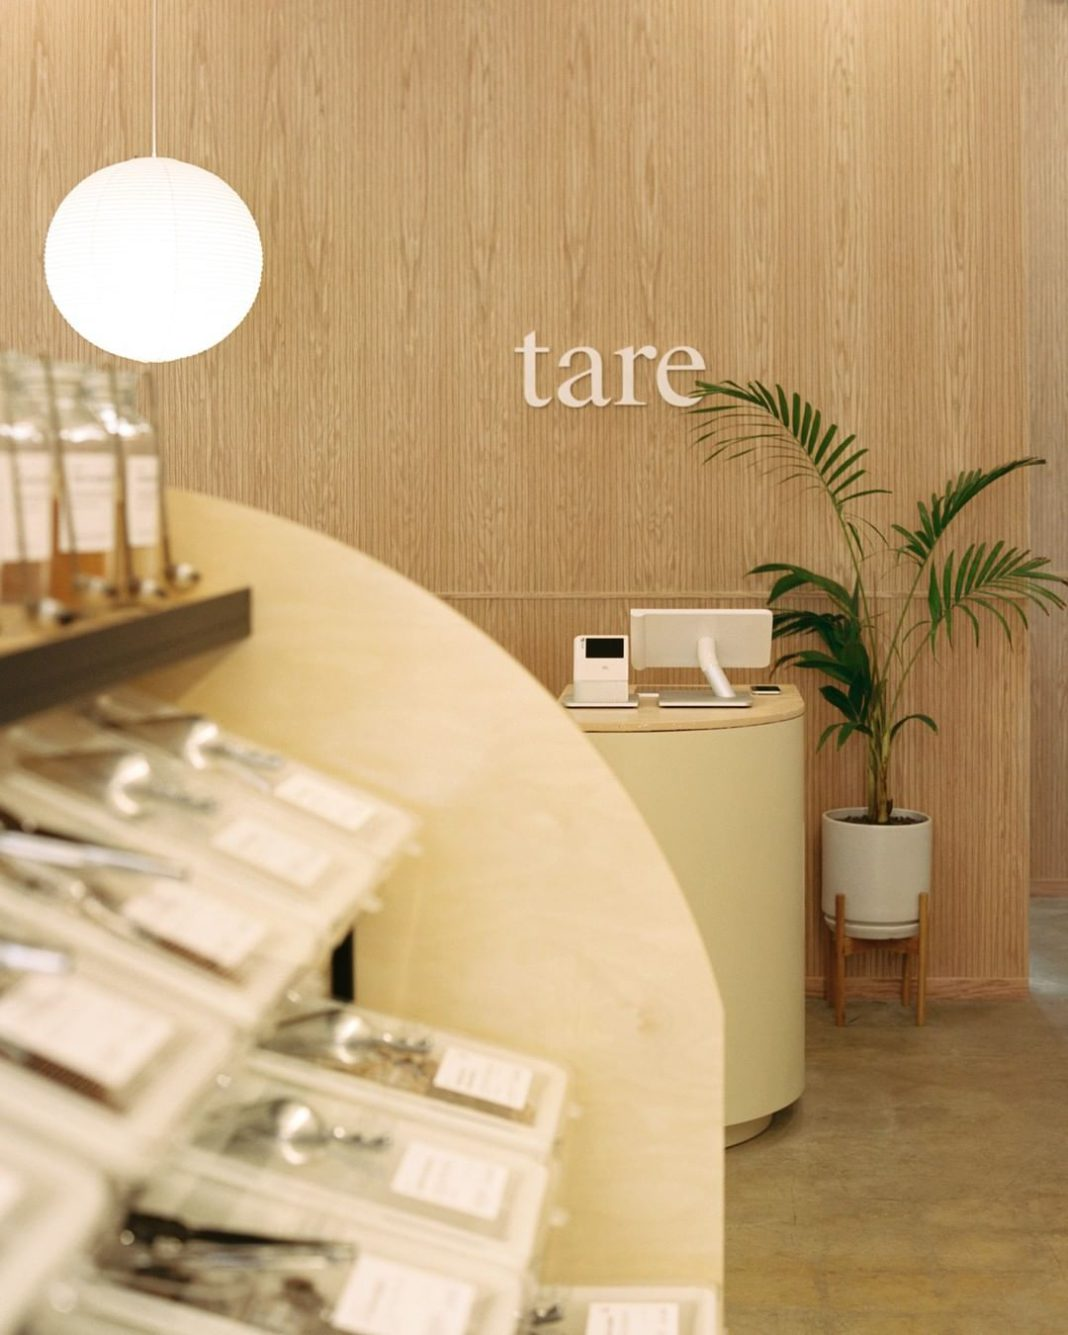 tare grocery